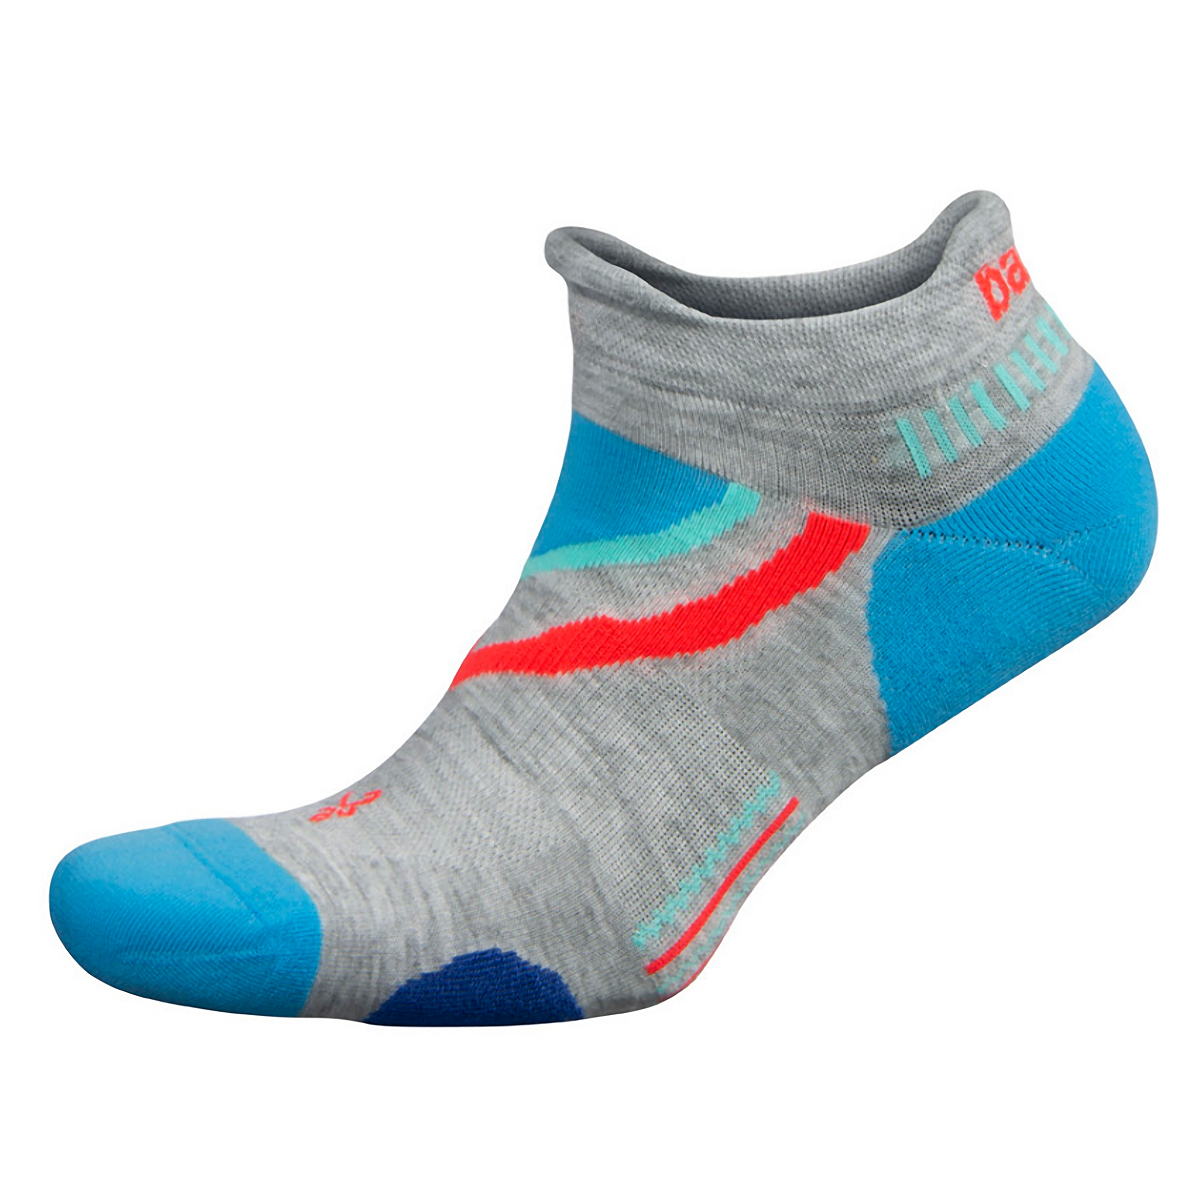 Balega UltraGlide No Show Socks - Color: Mid Grey/Ethereal Blue Size: S, Grey/Blue, large, image 1